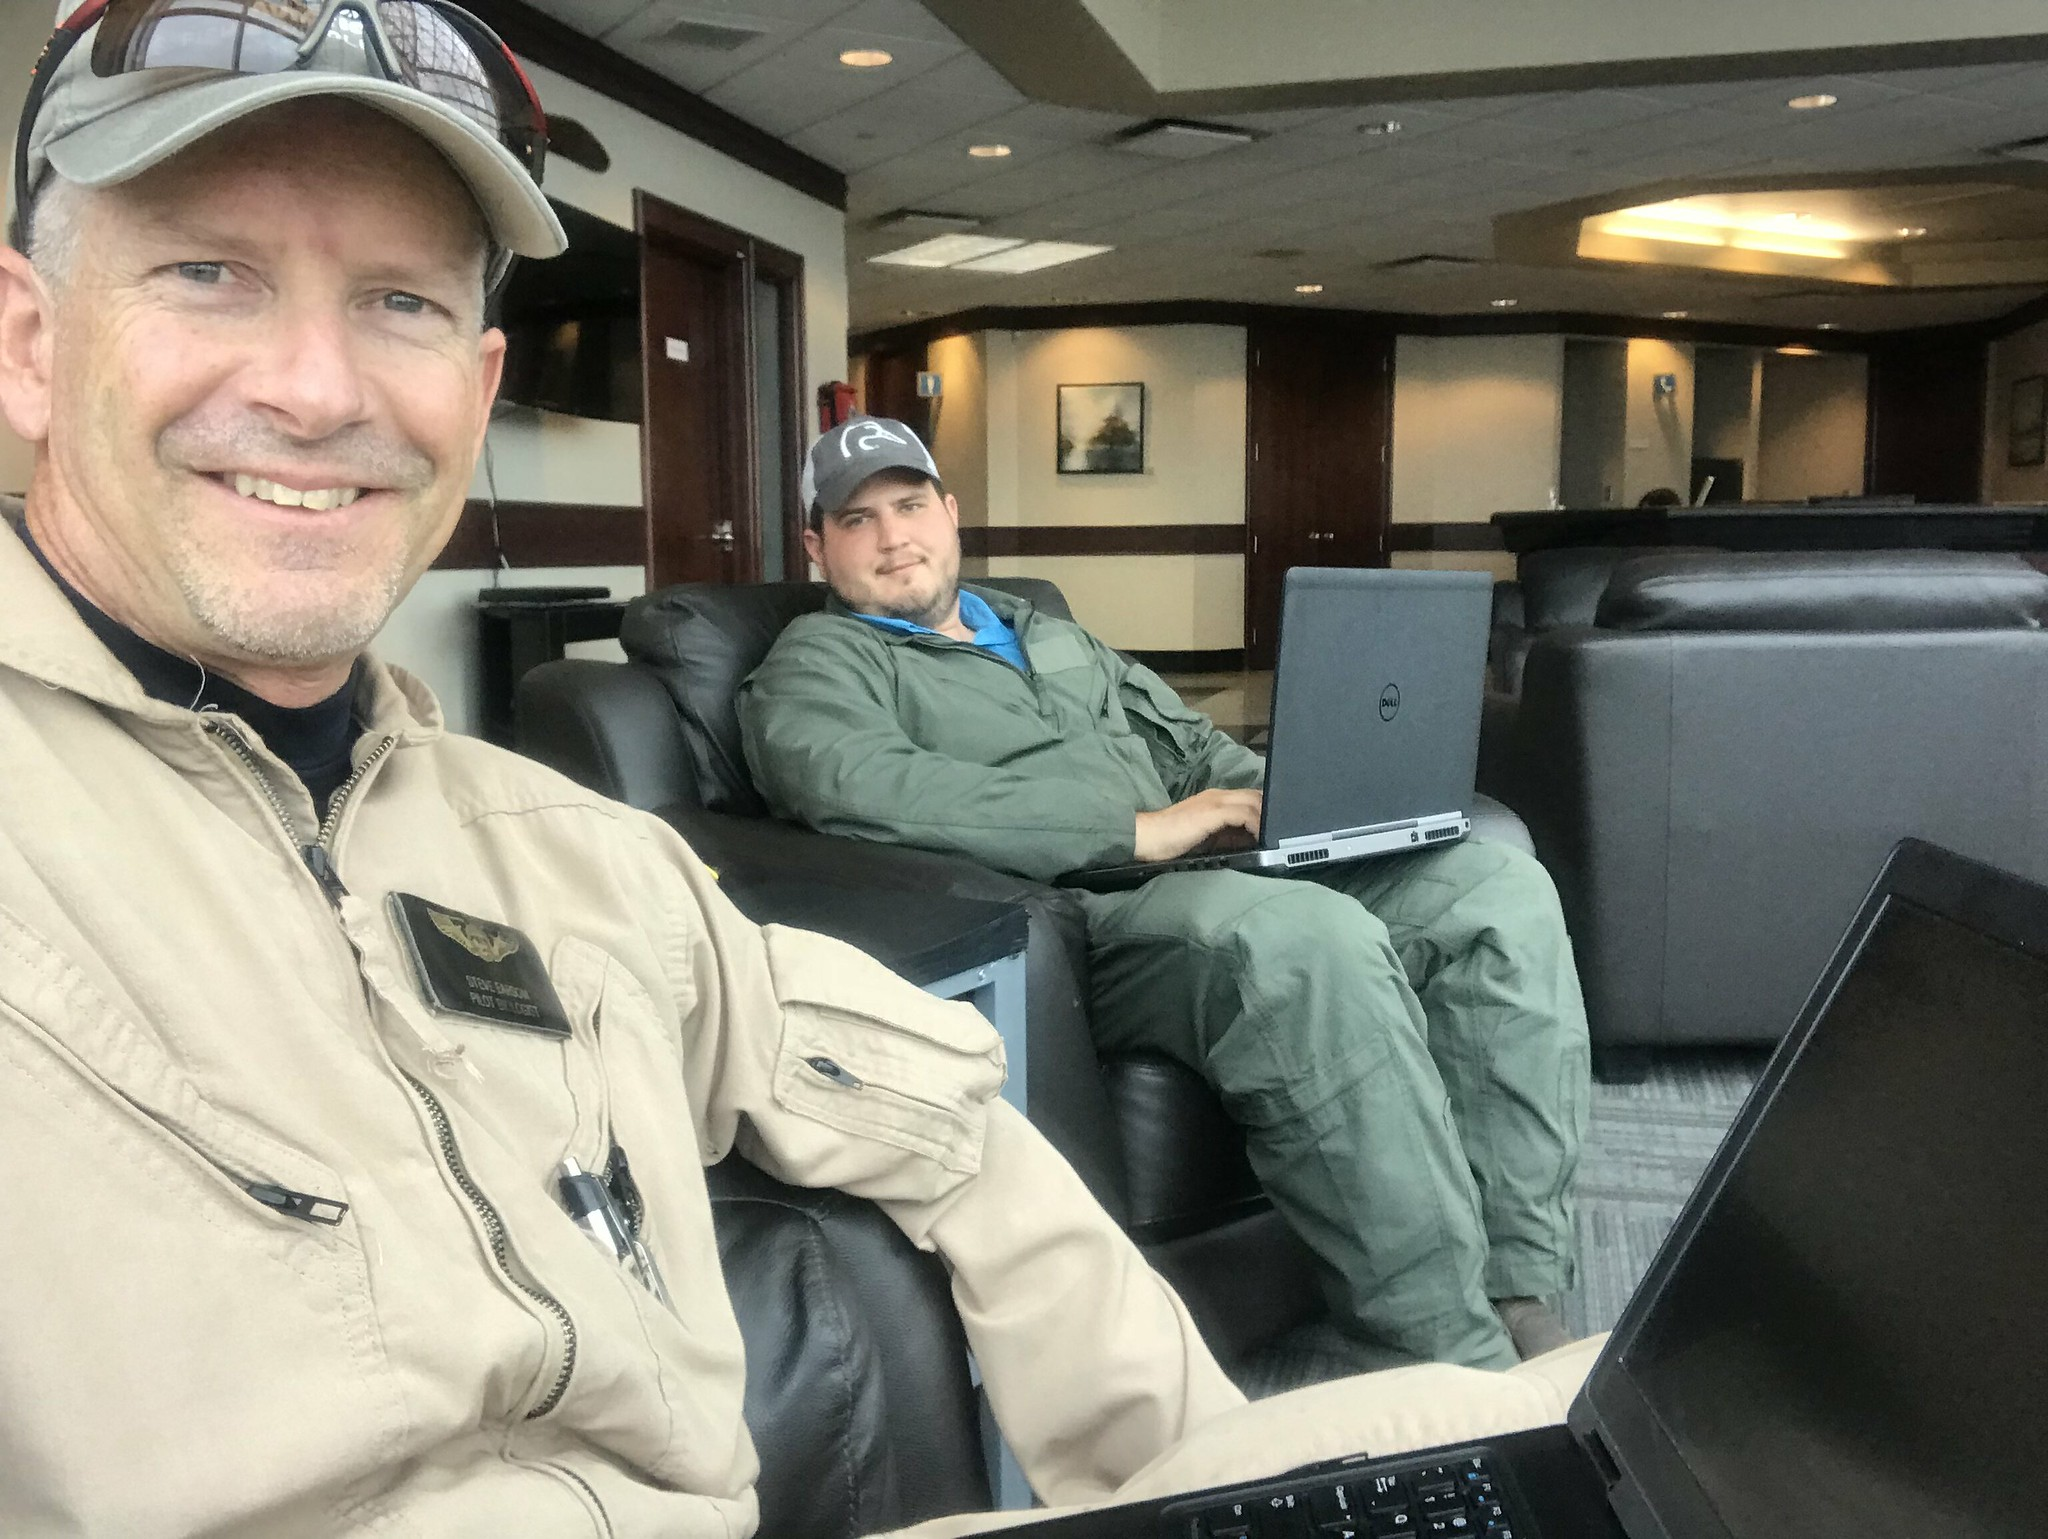 Biologist/Pilot Steve Earsom (L) and Observer Garrett Wilkerson waiting on better weather in Ottawa, Ontario, 10 May 2018. Photo: Steve Earsom (USFWS)